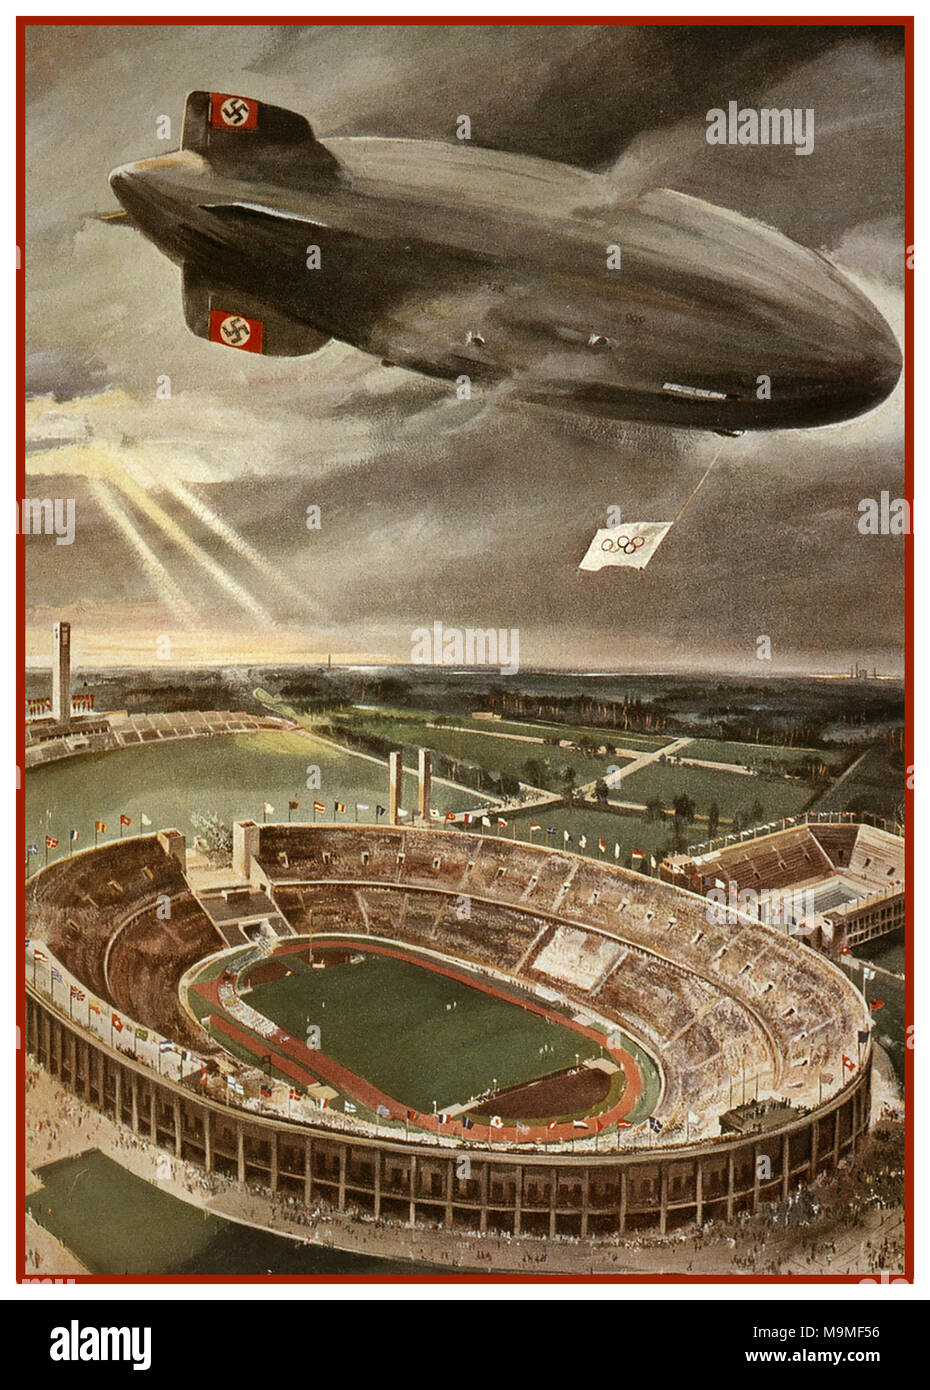 Hindenburg Zeppelin Airship Vintage Poster illustration of Nazi Hindenburg Zeppelin Airship flying Olympic Flag with Swastika Tail Fin over the Berlin Olympic Games Stadium during the opening ceremony of the Olympic Games. - Stock Image